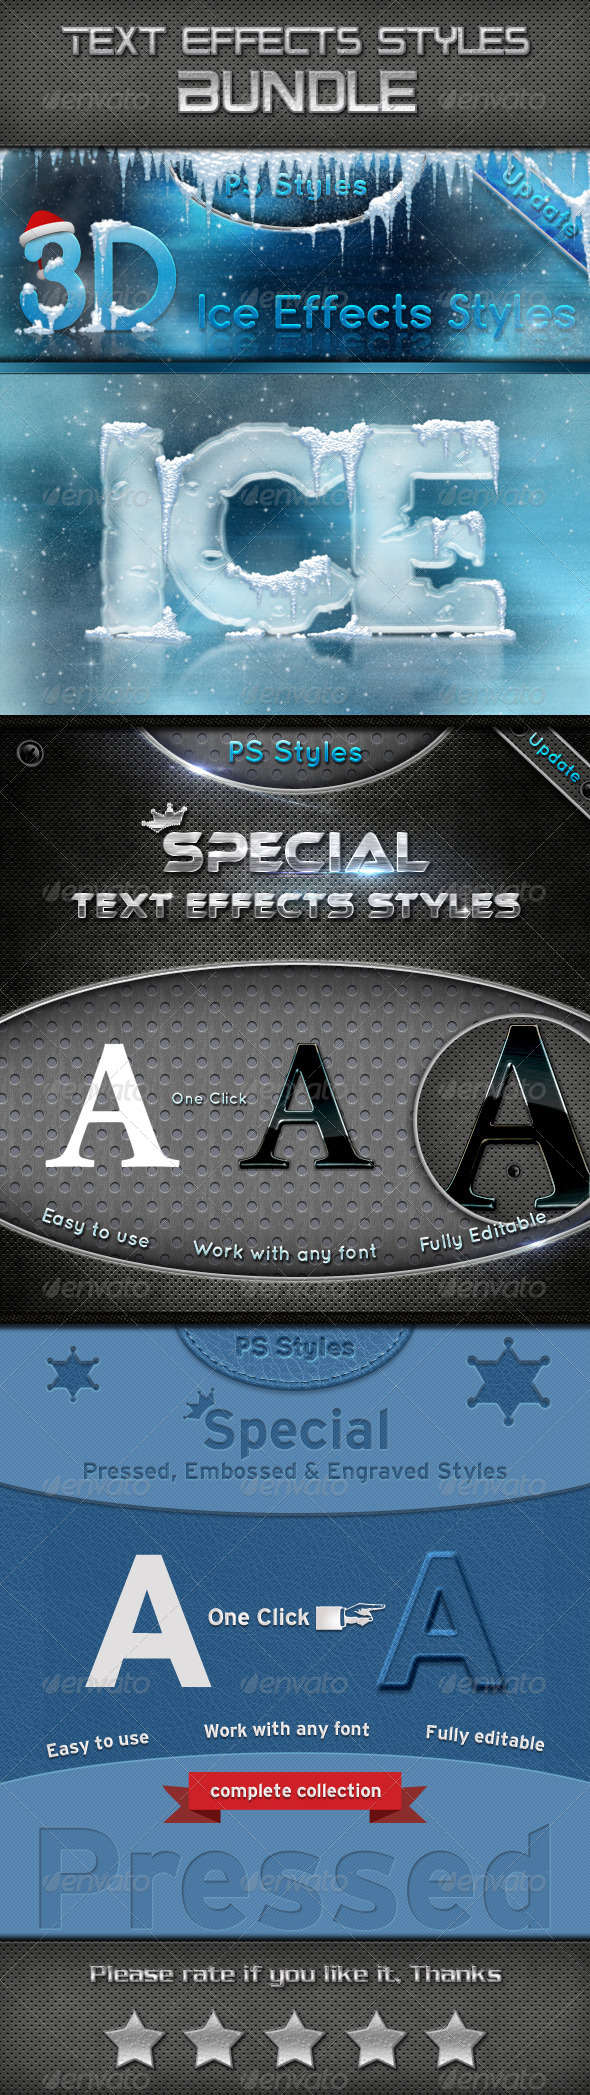 GraphicRiver Text Effects Styles Bundle 6762146